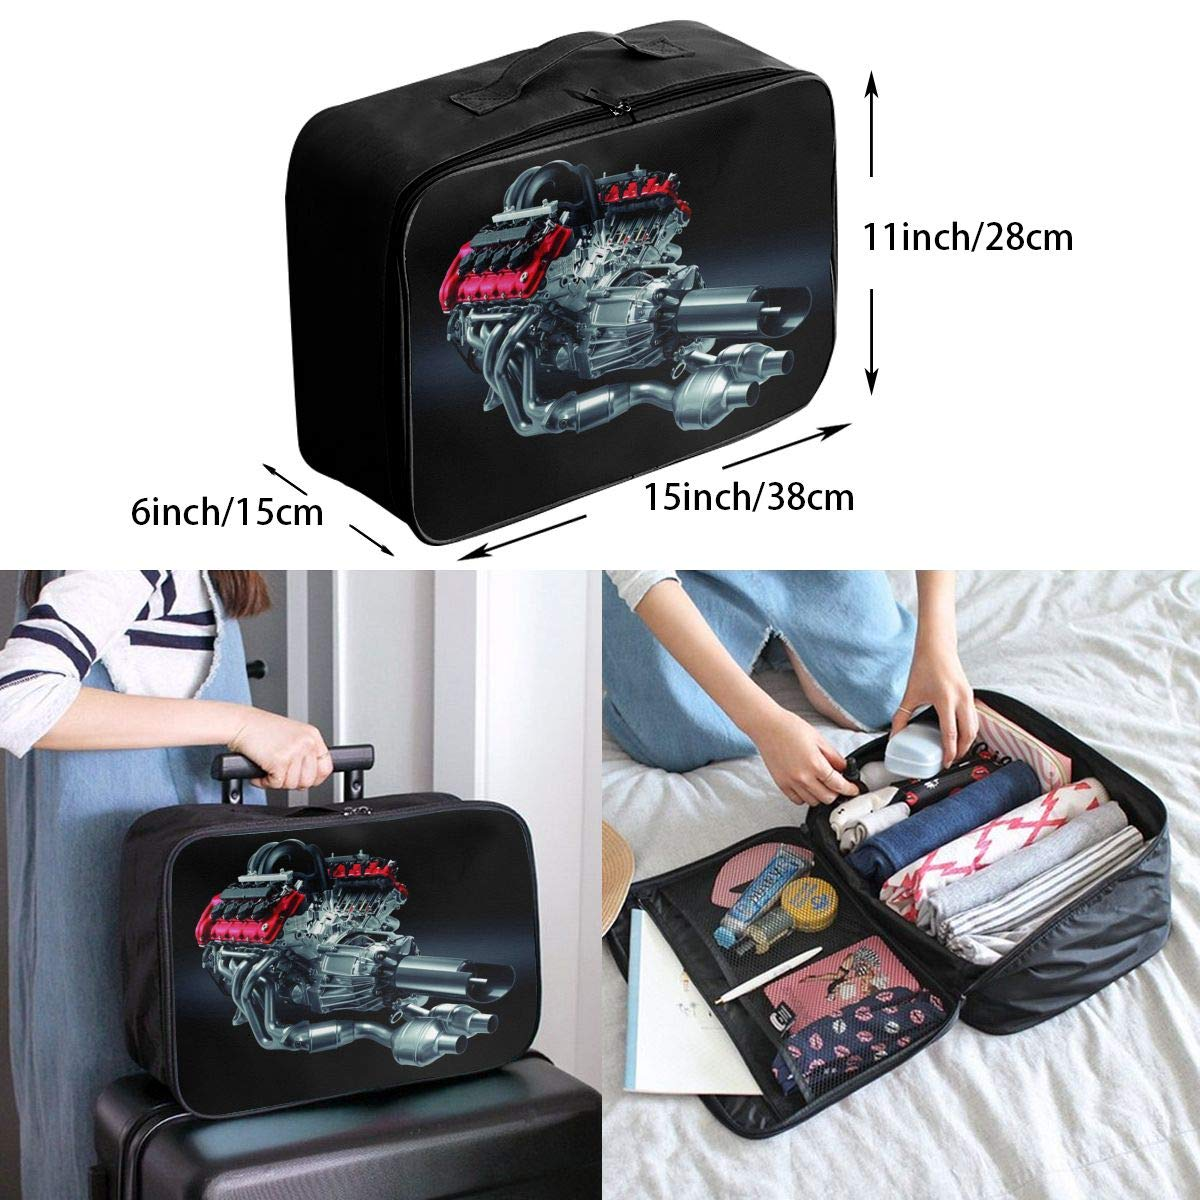 Travel Luggage Duffle Bag Lightweight Portable Handbag Cool Engine Pattern Large Capacity Waterproof Foldable Storage Tote